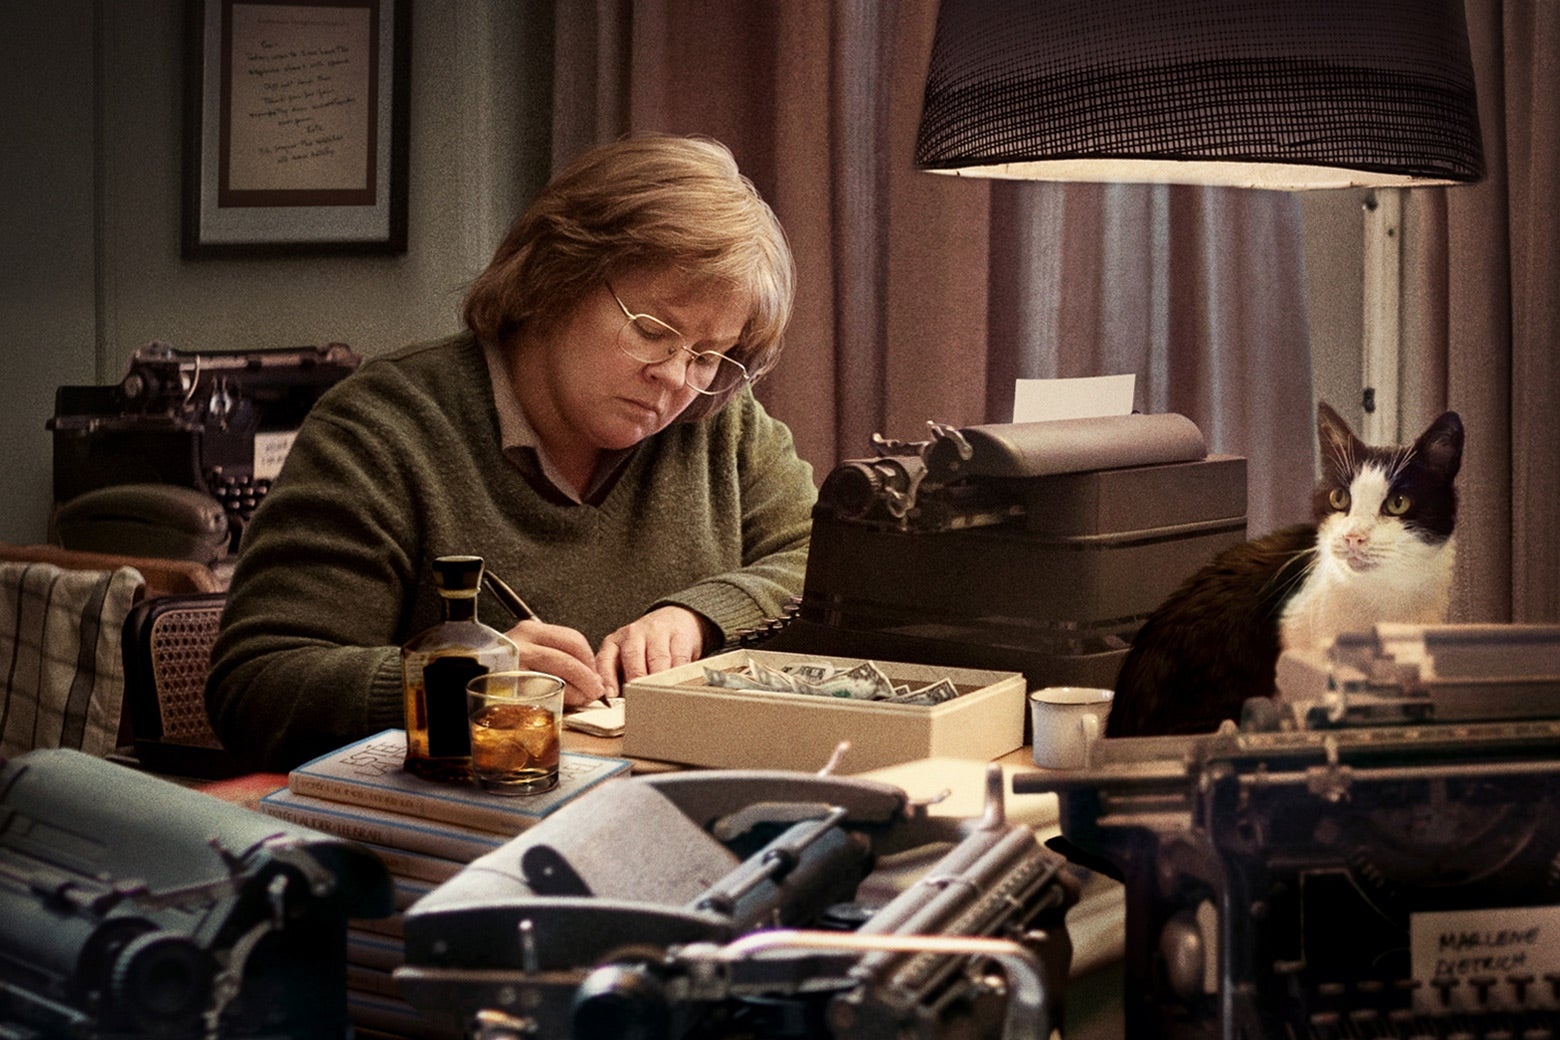 In a scene from Can You Ever Forgive Me? Lee Israel, played by Melissa McCarthy, sits at a desk forging a letter. There are several typewriters, a lamp, and a cat on the desk.